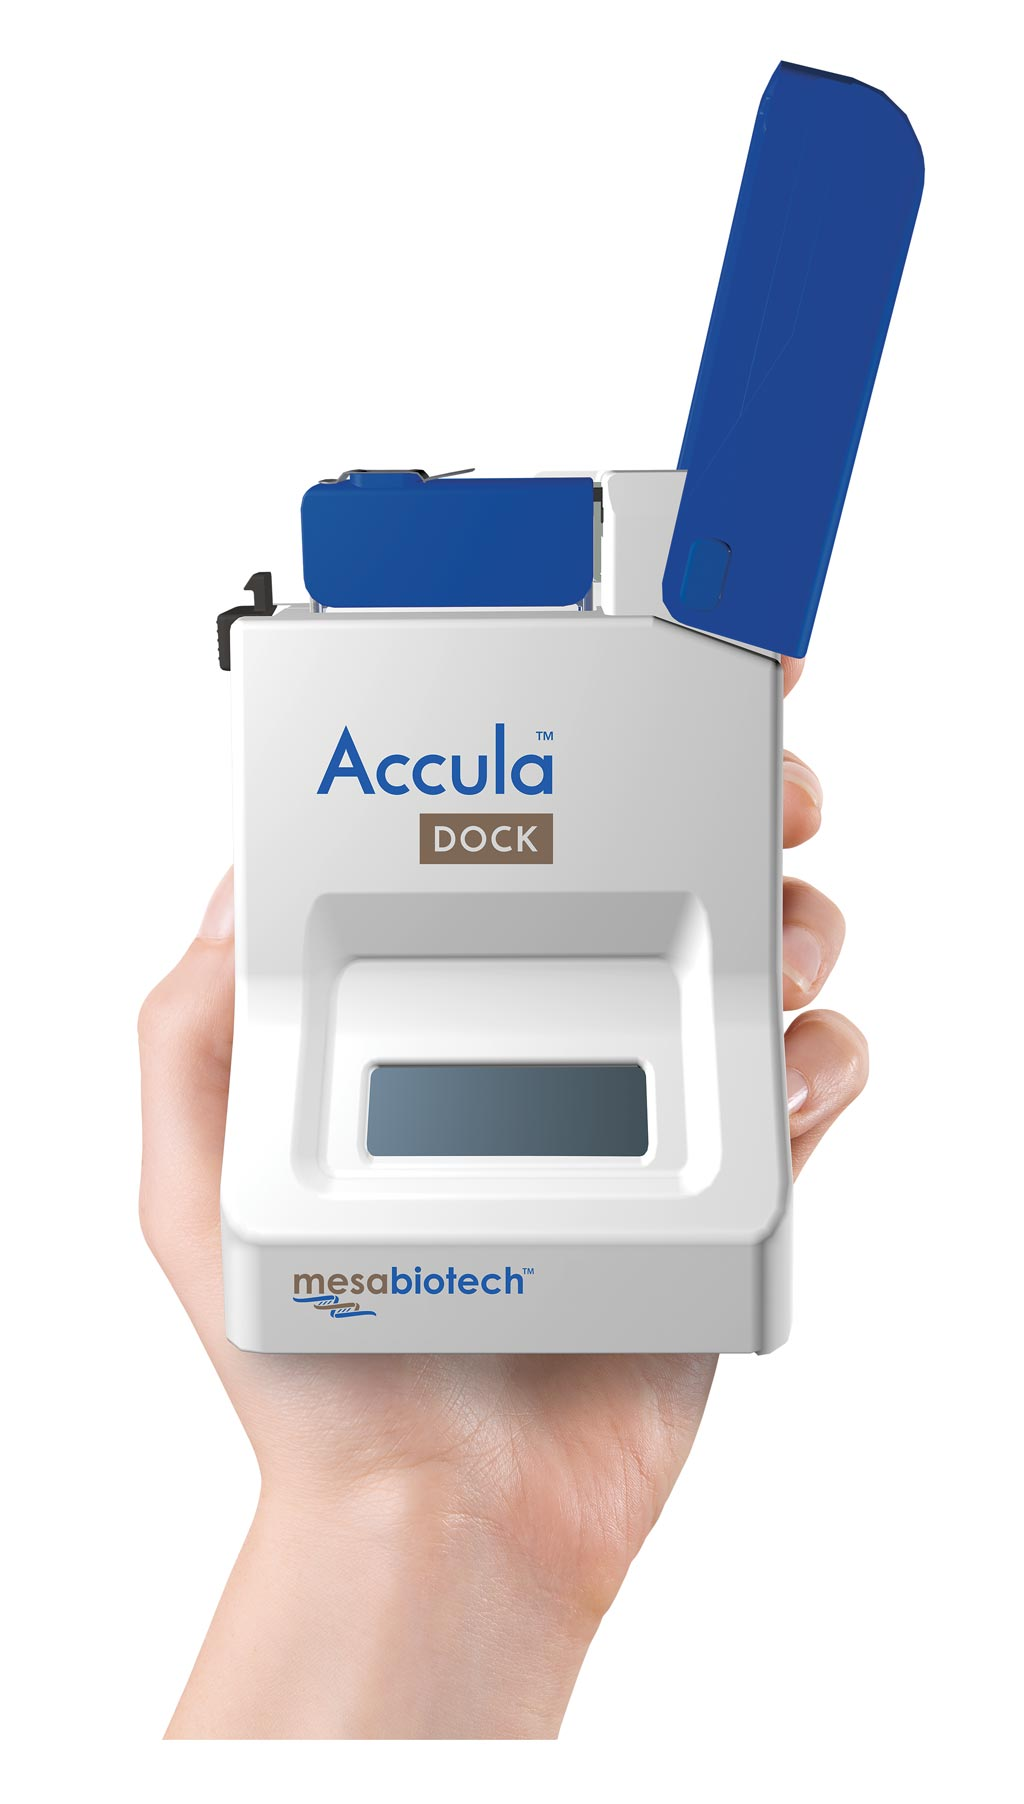 Image: The Accula Dock system (Photo courtesy of Mesa Biotech).